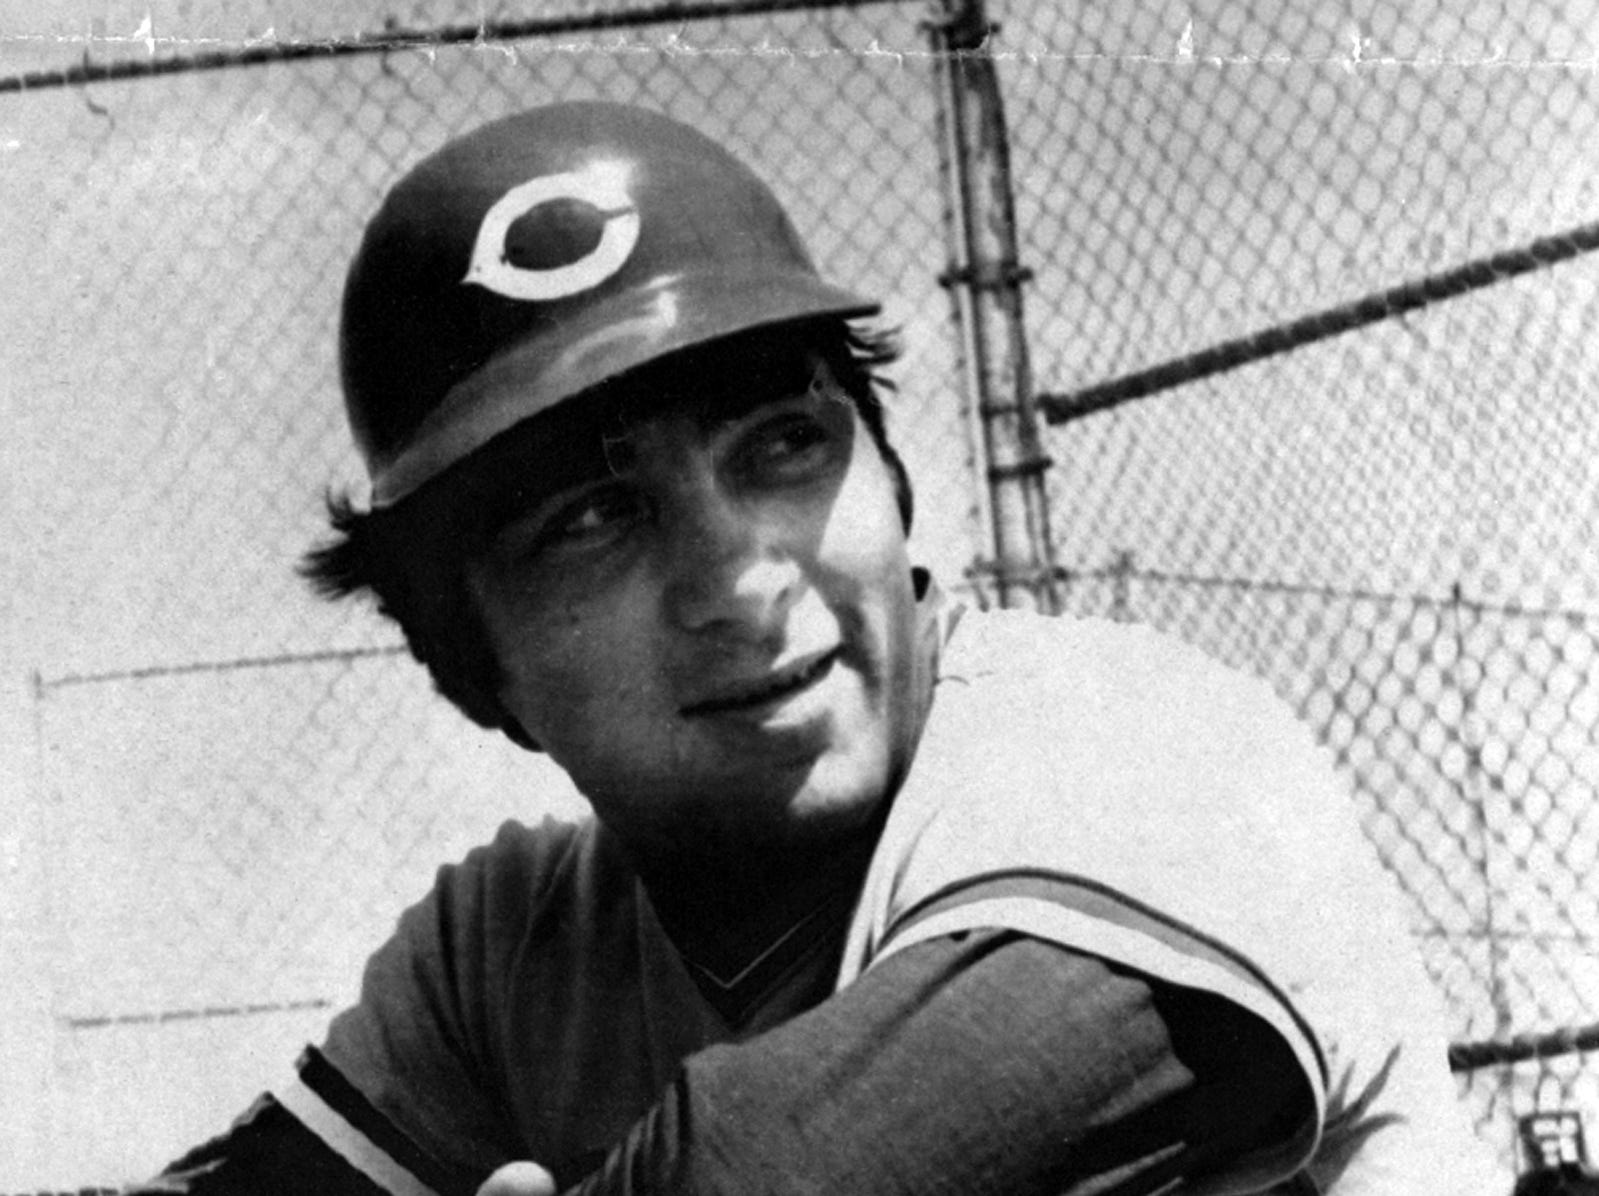 AUGUST 10, (YEAR UNKNOWN): Cincinnati Reds catcher Johnny Bench, shown in a 1976 file photo, appears to be headed for surgery again after the season ends. Bench, battered by twelve years of professional baseball, faces surgery on his right shoulder. After last season, he had to have surgery on his left shoulder. AP Photo scanned August 6, 2013